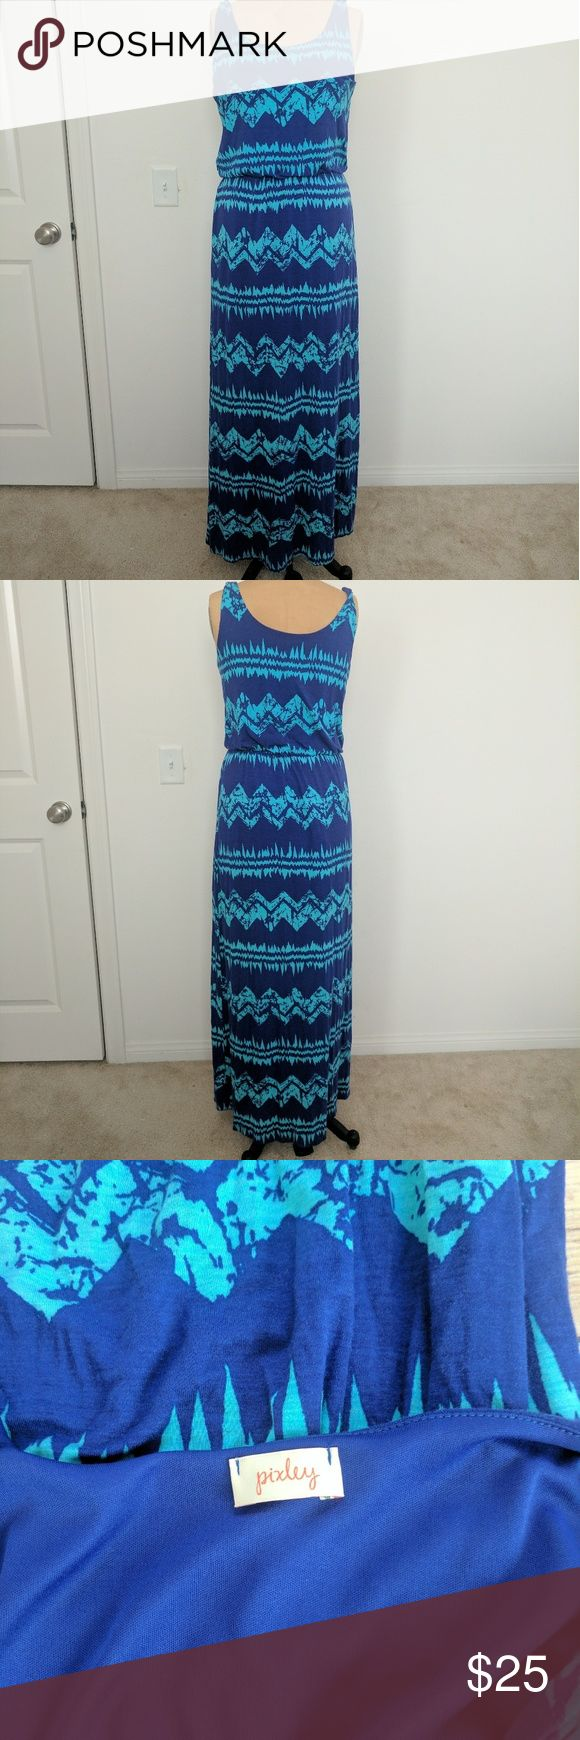 Pixley by Stitch fix jacobe Chevron max dress Excellent condition, no wear. Pixley by Stitch fix. Color are blue and greenish aqua, Size Large Bust: 19inches armpit to armpit with stretch, Waist is elastic going from 13-19inches and Length: 56inches shoulder down. Perfect for summer! pixley Dresses Maxi